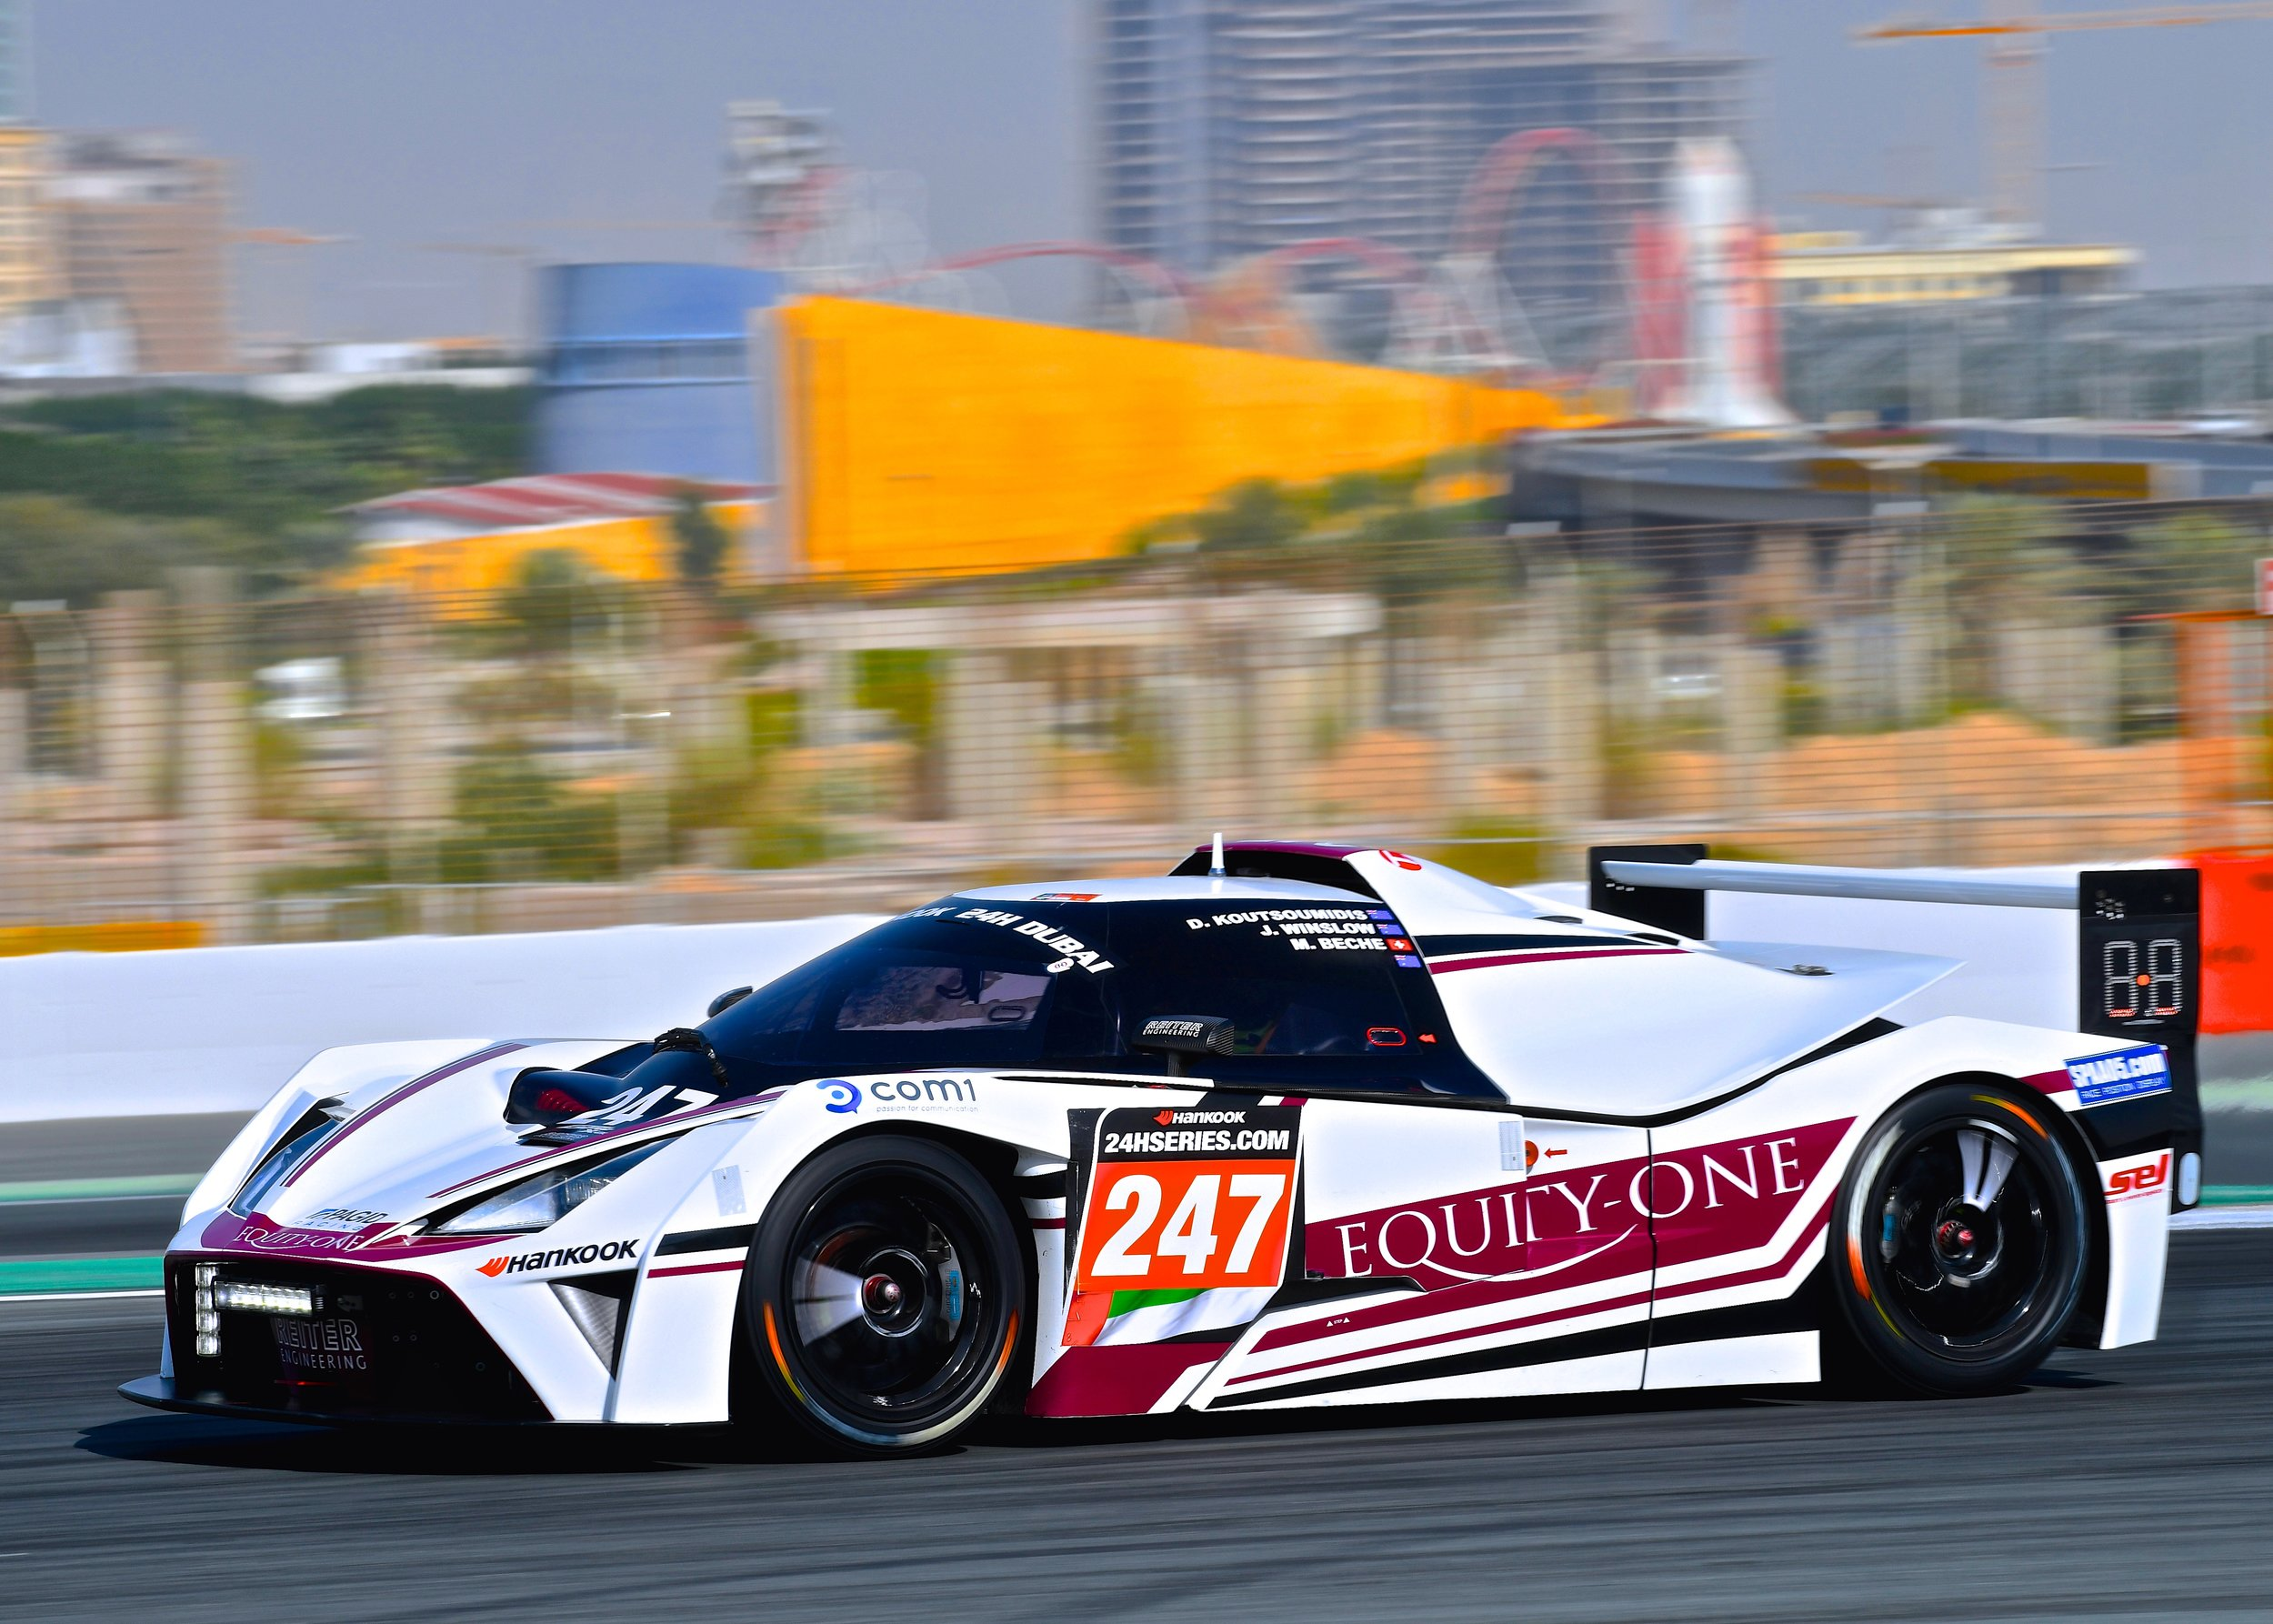 Parsons, Winslow, Koutsoumidis and Beche will take on Mount Panorama in the KTM X-Bow this weekend